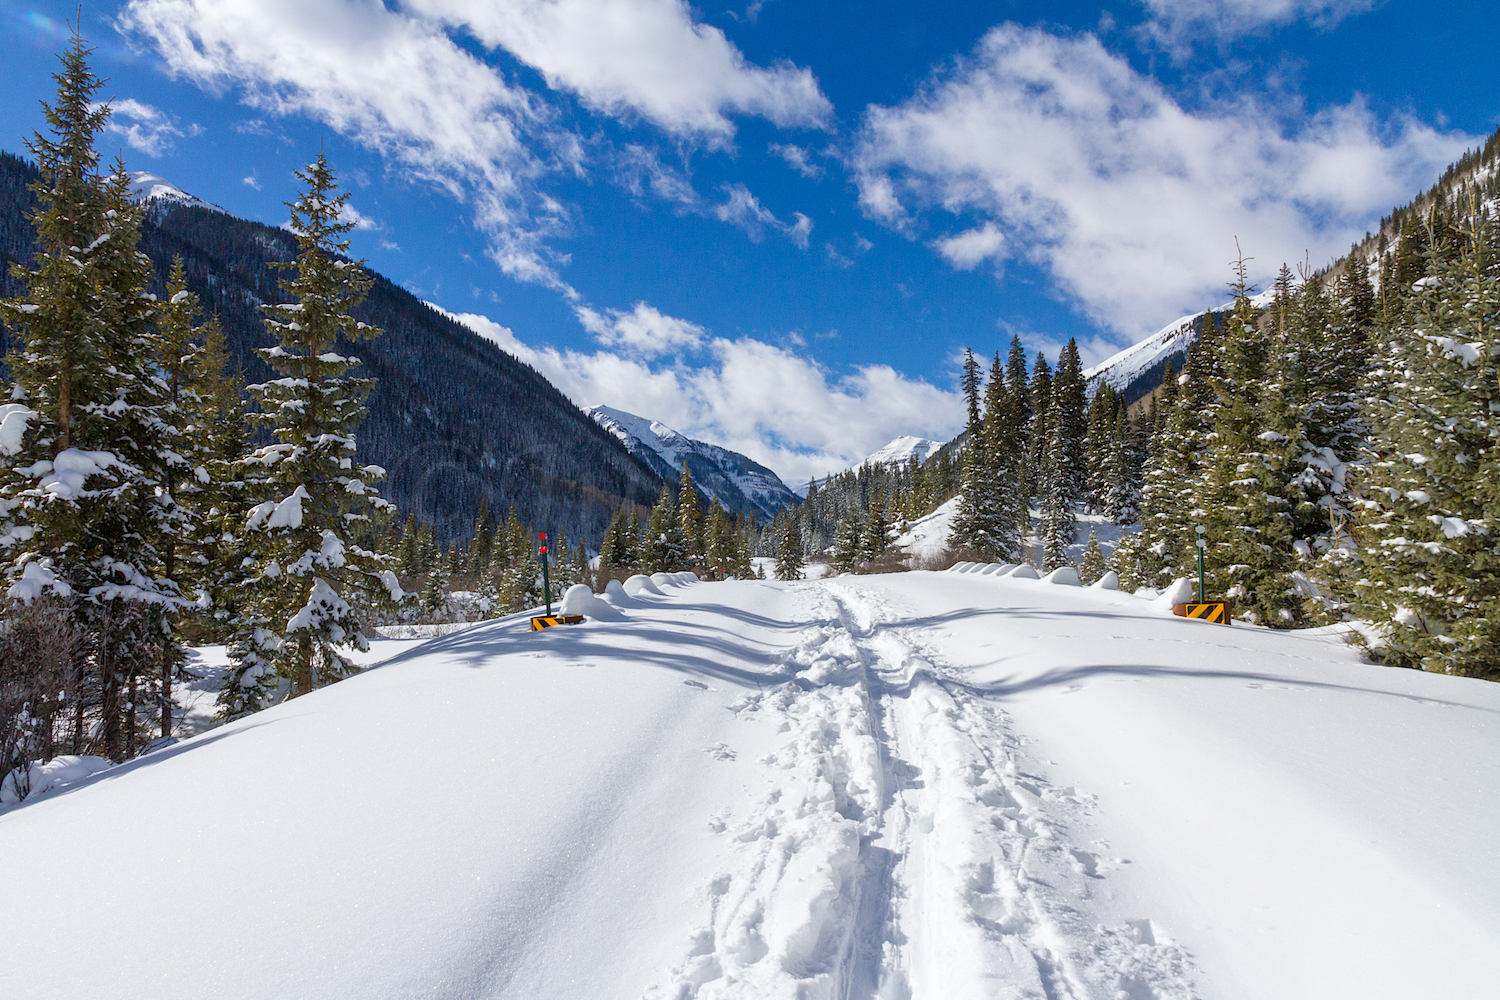 South Mineral Snowshoe, Image # 2691